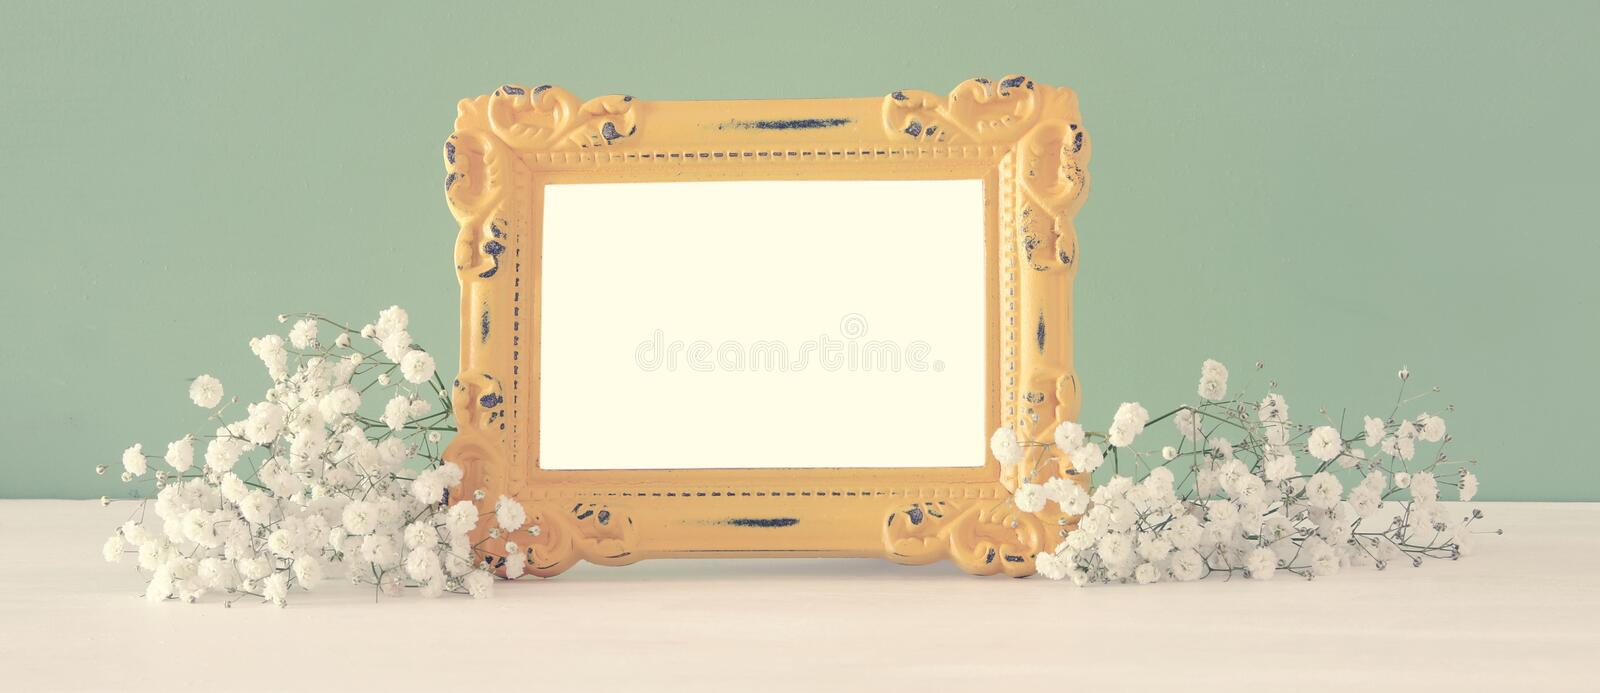 Image of beautiful bouquet of spring flowers next to blank vintage photo frame on wooden table. For photography mock up montage. royalty free stock photo